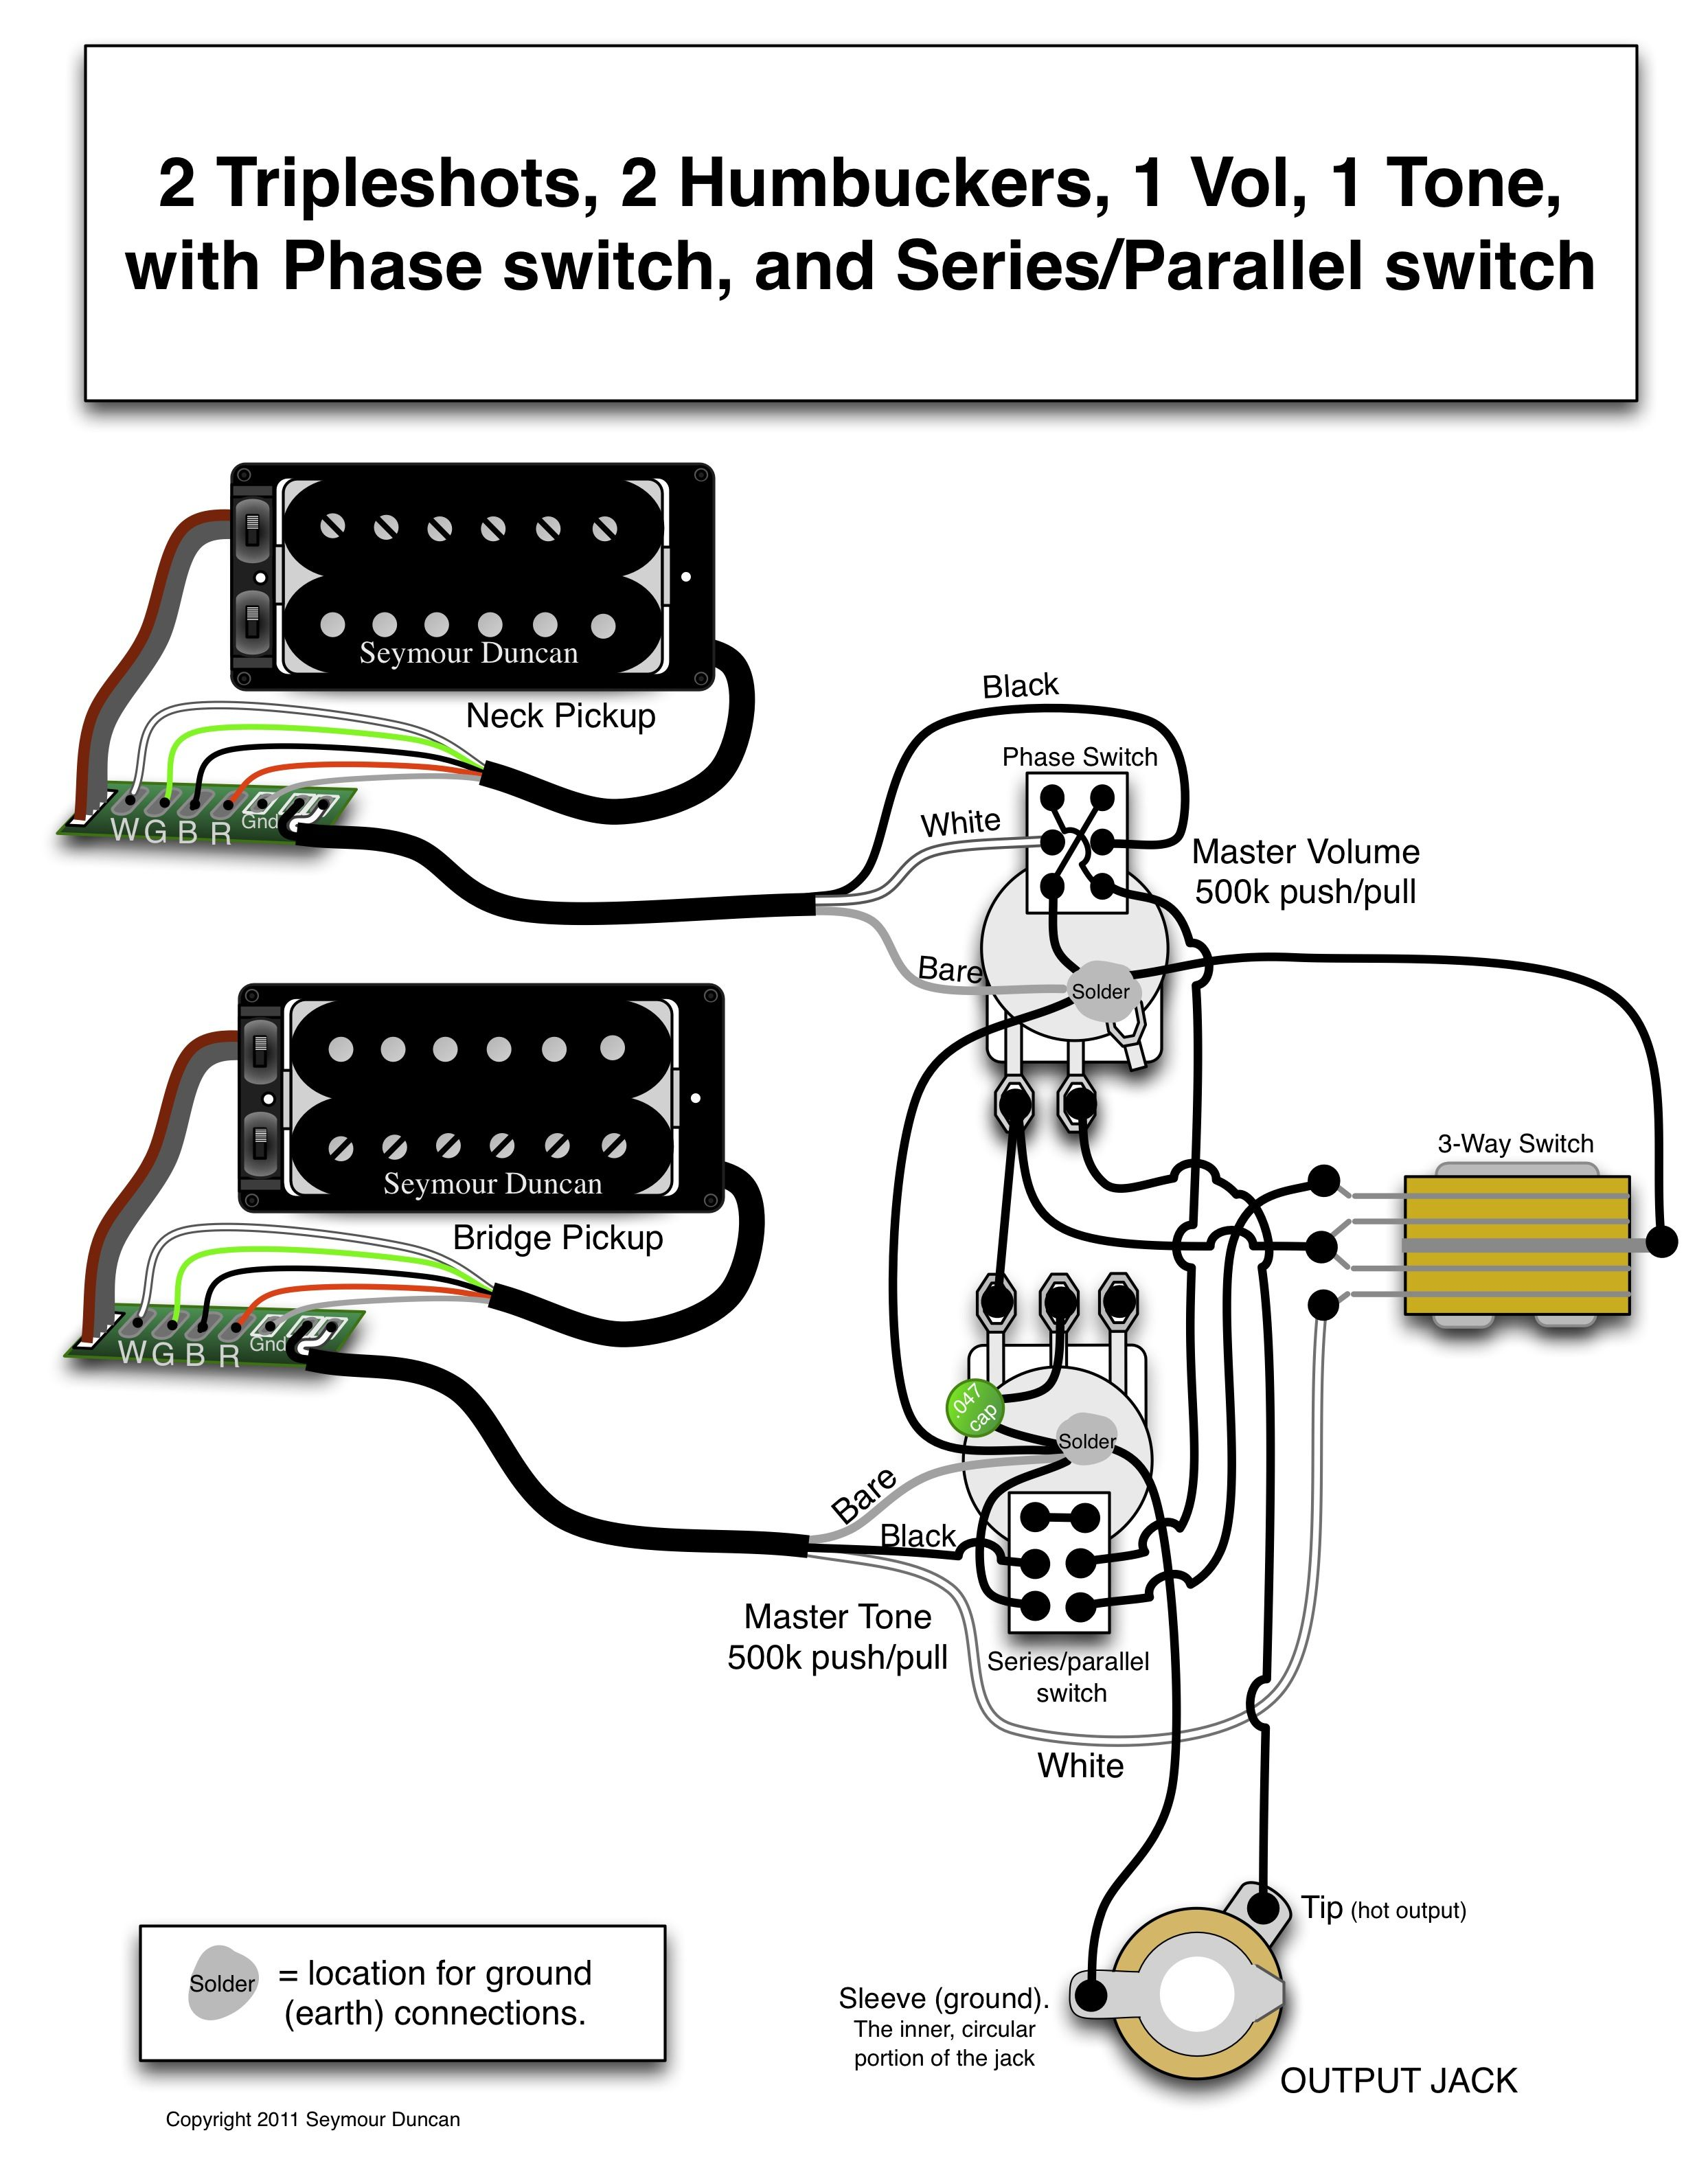 Seymour Duncan Wiring Diagrams Sss Manual Guide Diagram Tele Hot Rails Neck 2 Triple Shots Humbuckers 1 Vol Rh Pinterest Com